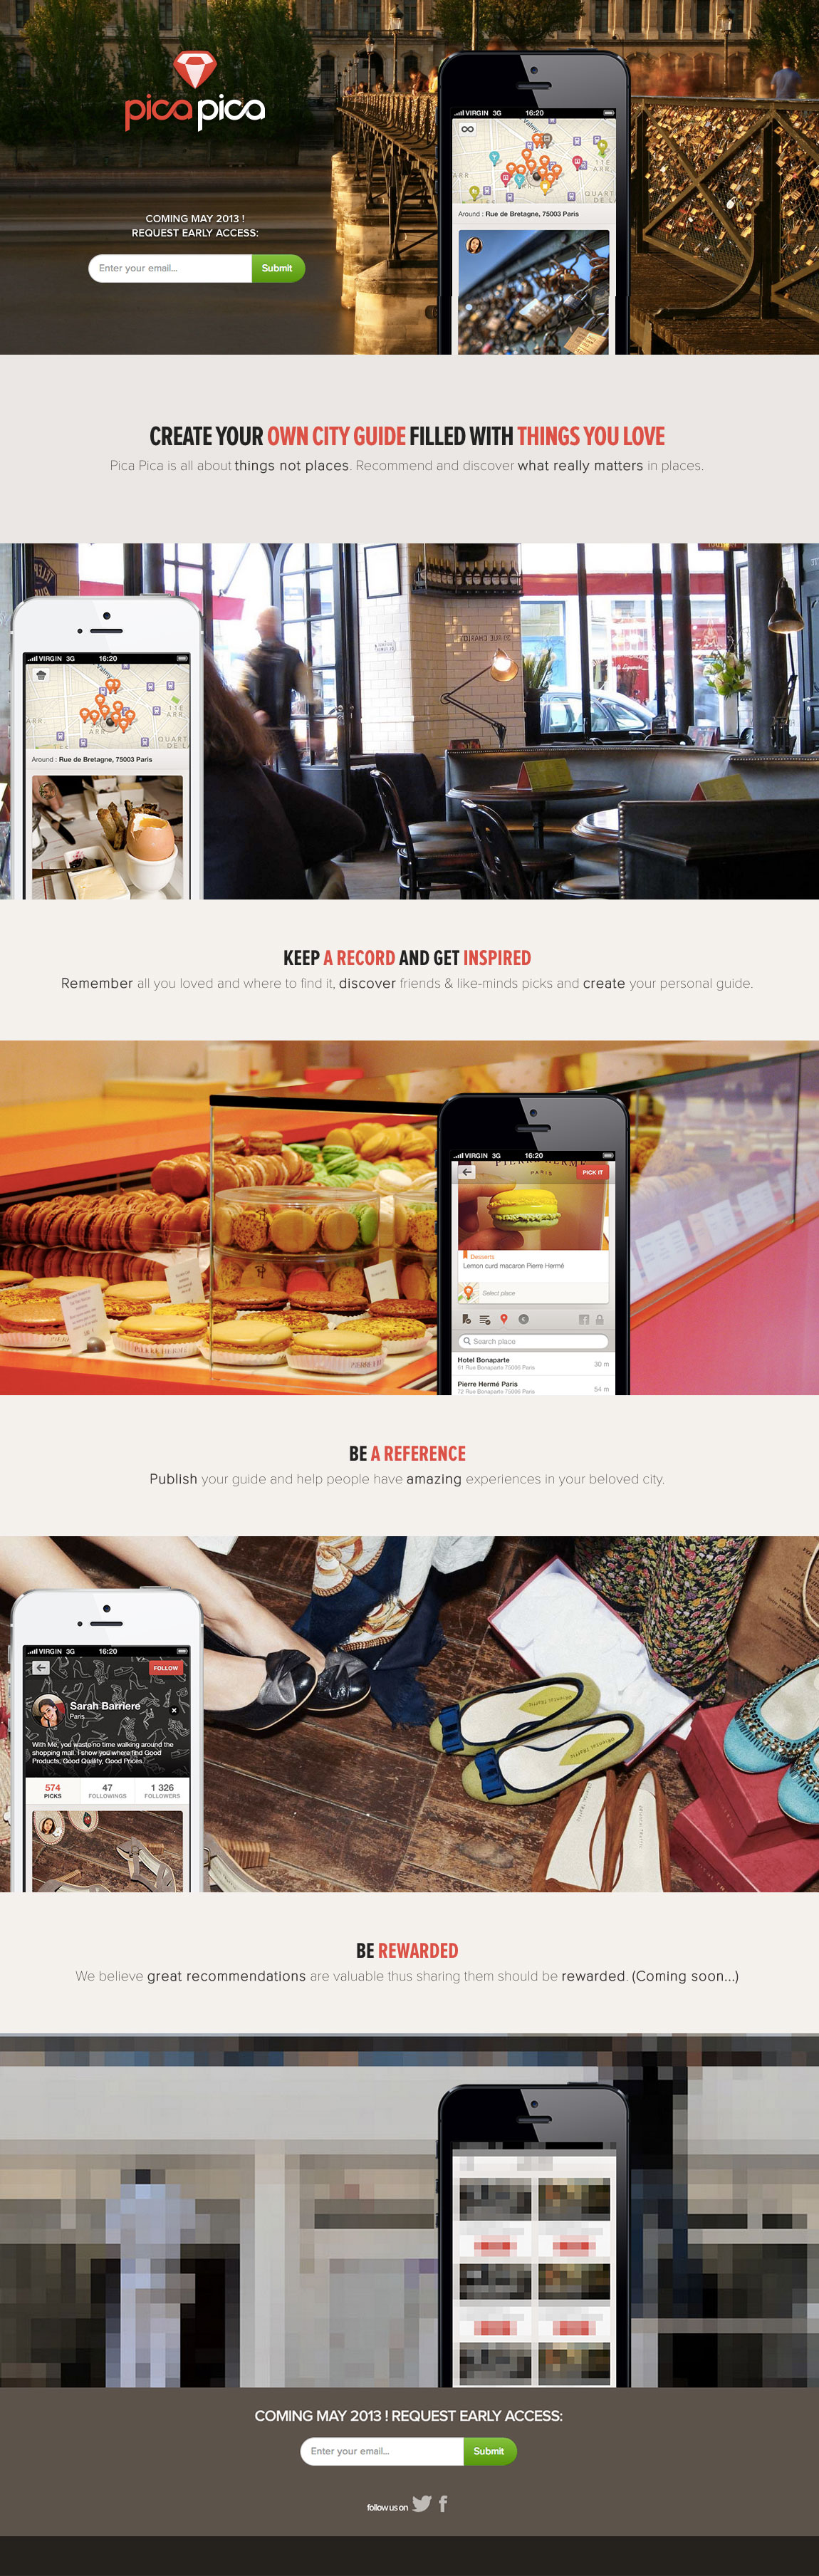 Pica Pica Website Screenshot